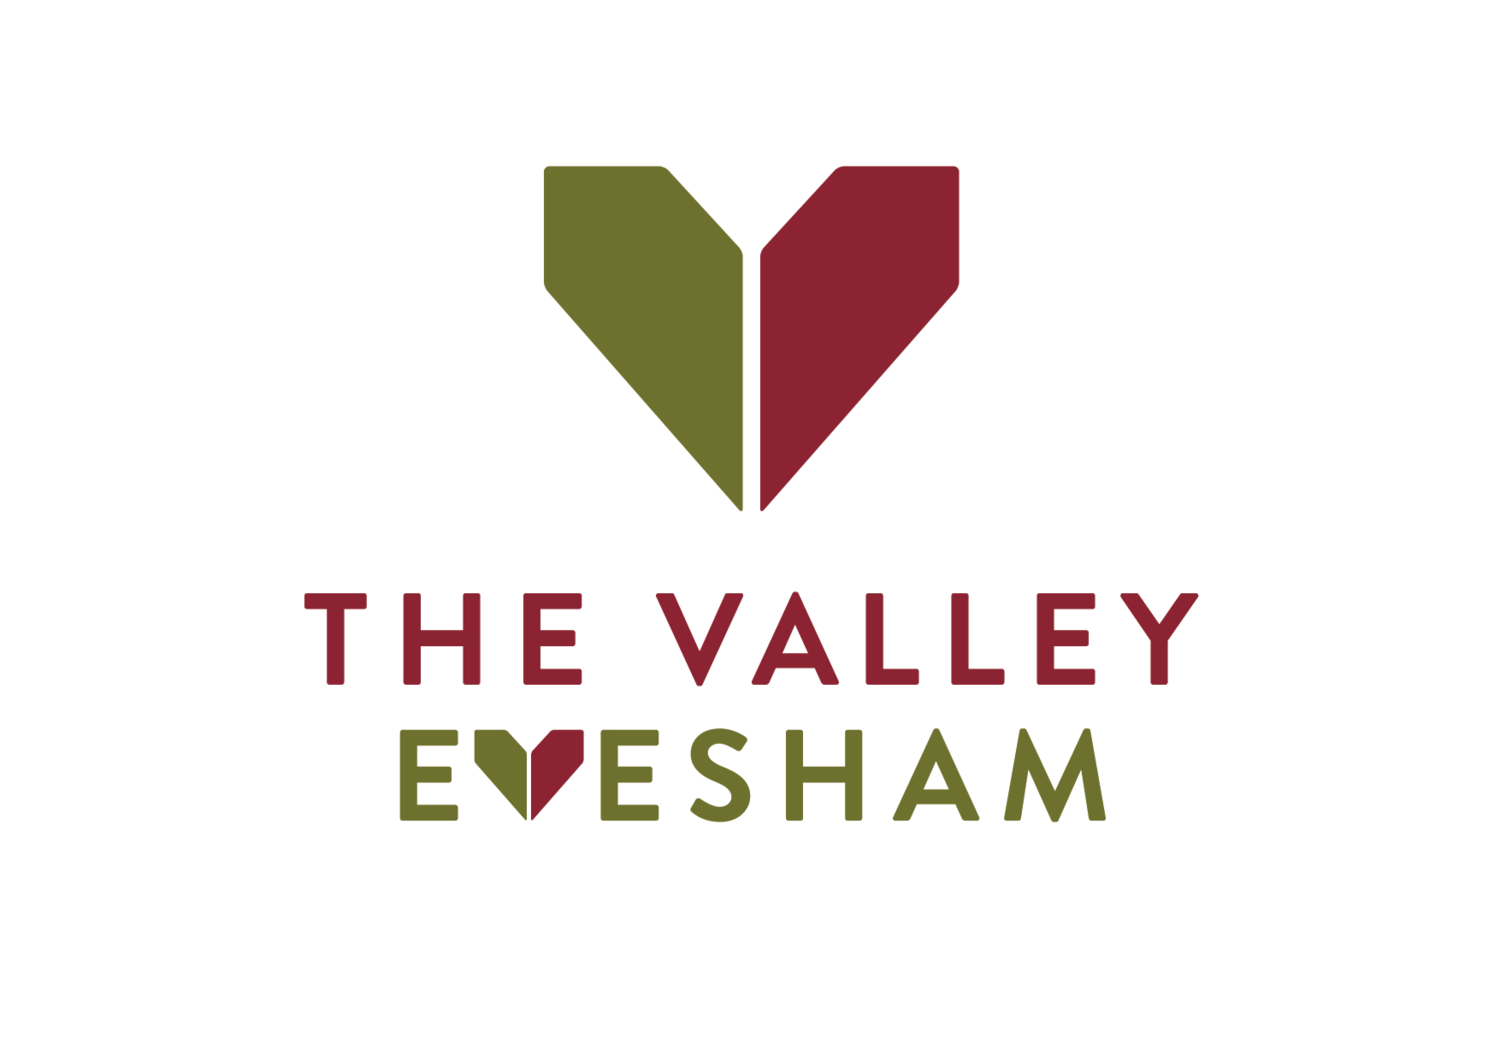 The Valley Evesham